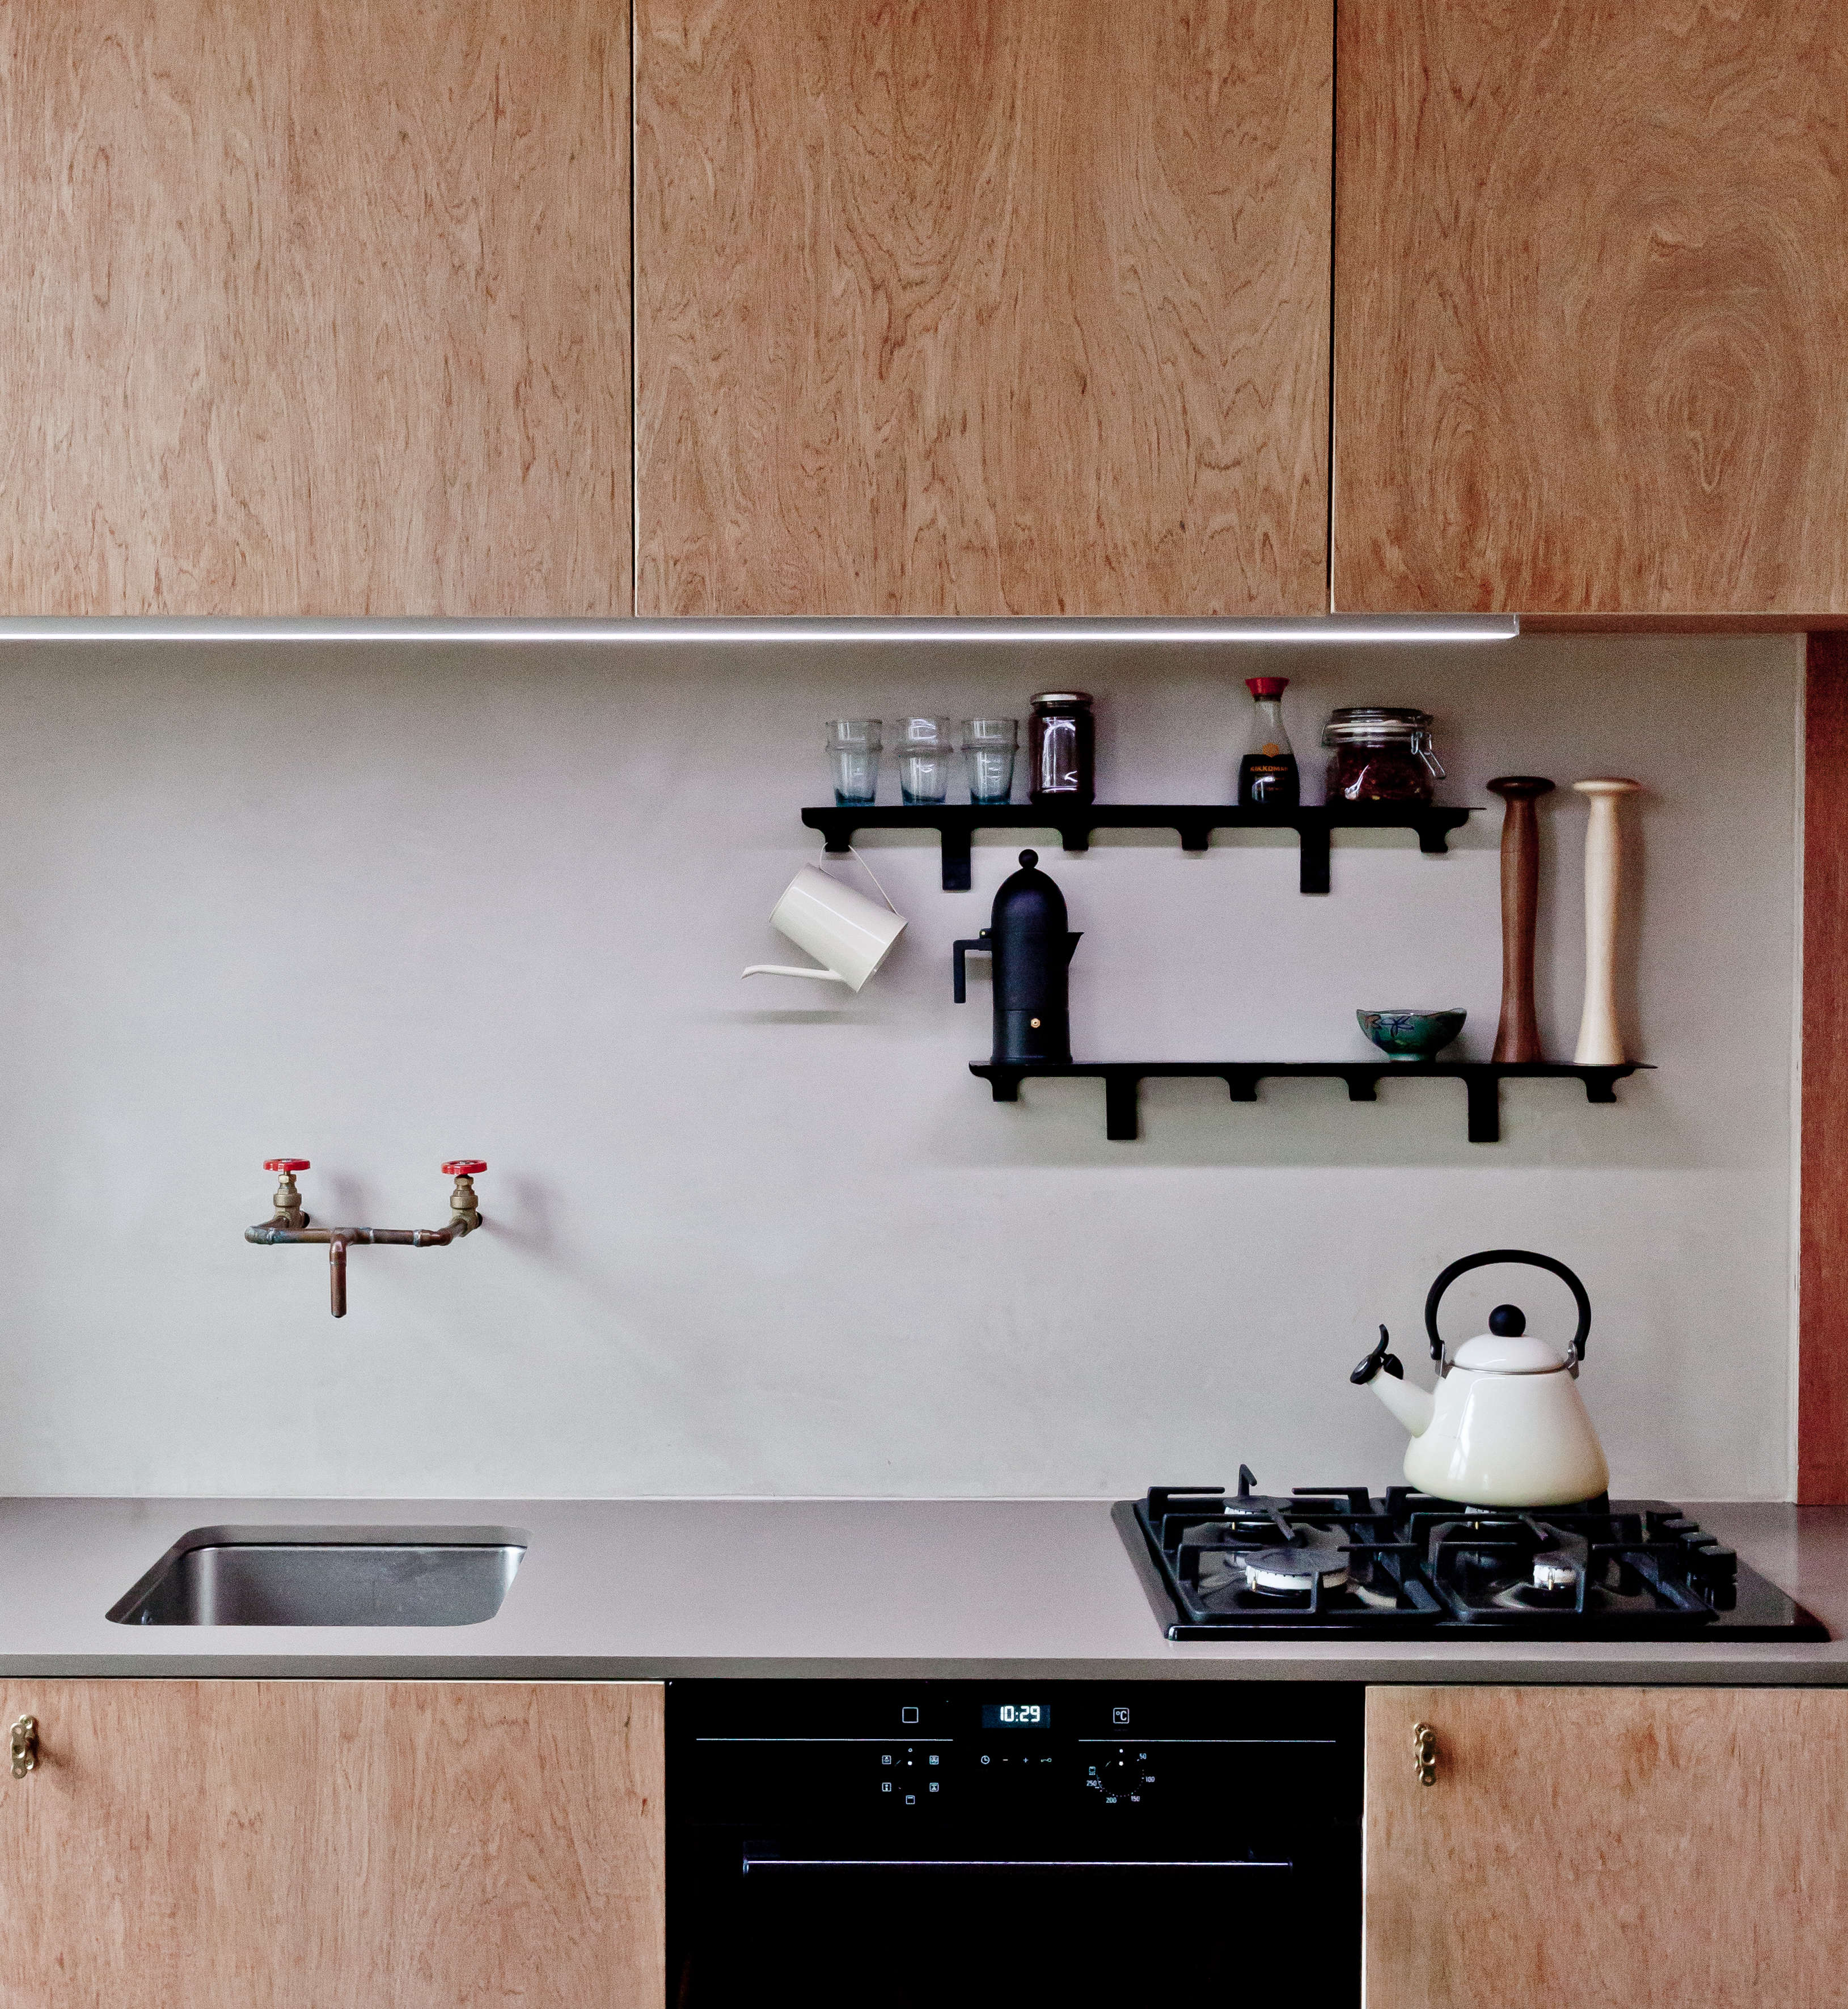 Solid plywood kitchen cabinets - Above The Kitchen Has A Solid Brushed Brass Faucet Fabricated From Piping And Other Plumber S Parts Sourced From Brass Electrical Accessories